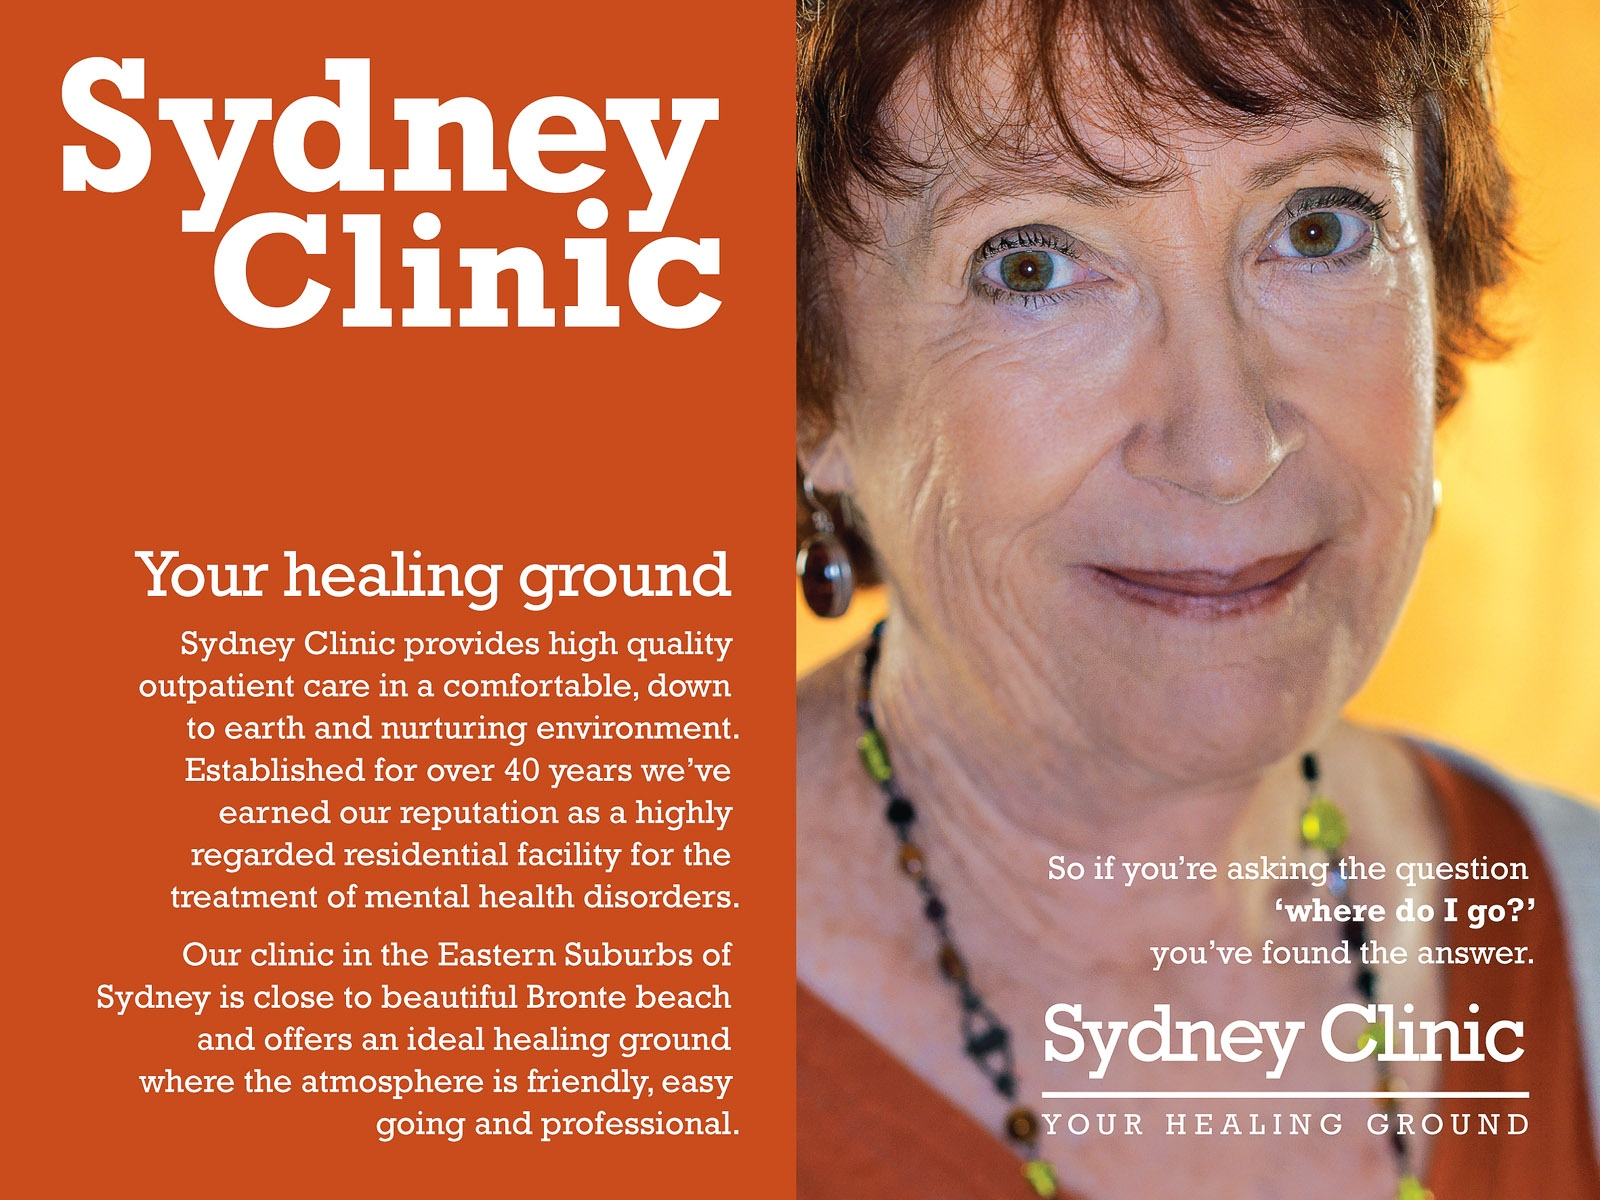 Sydney Clinic campaign